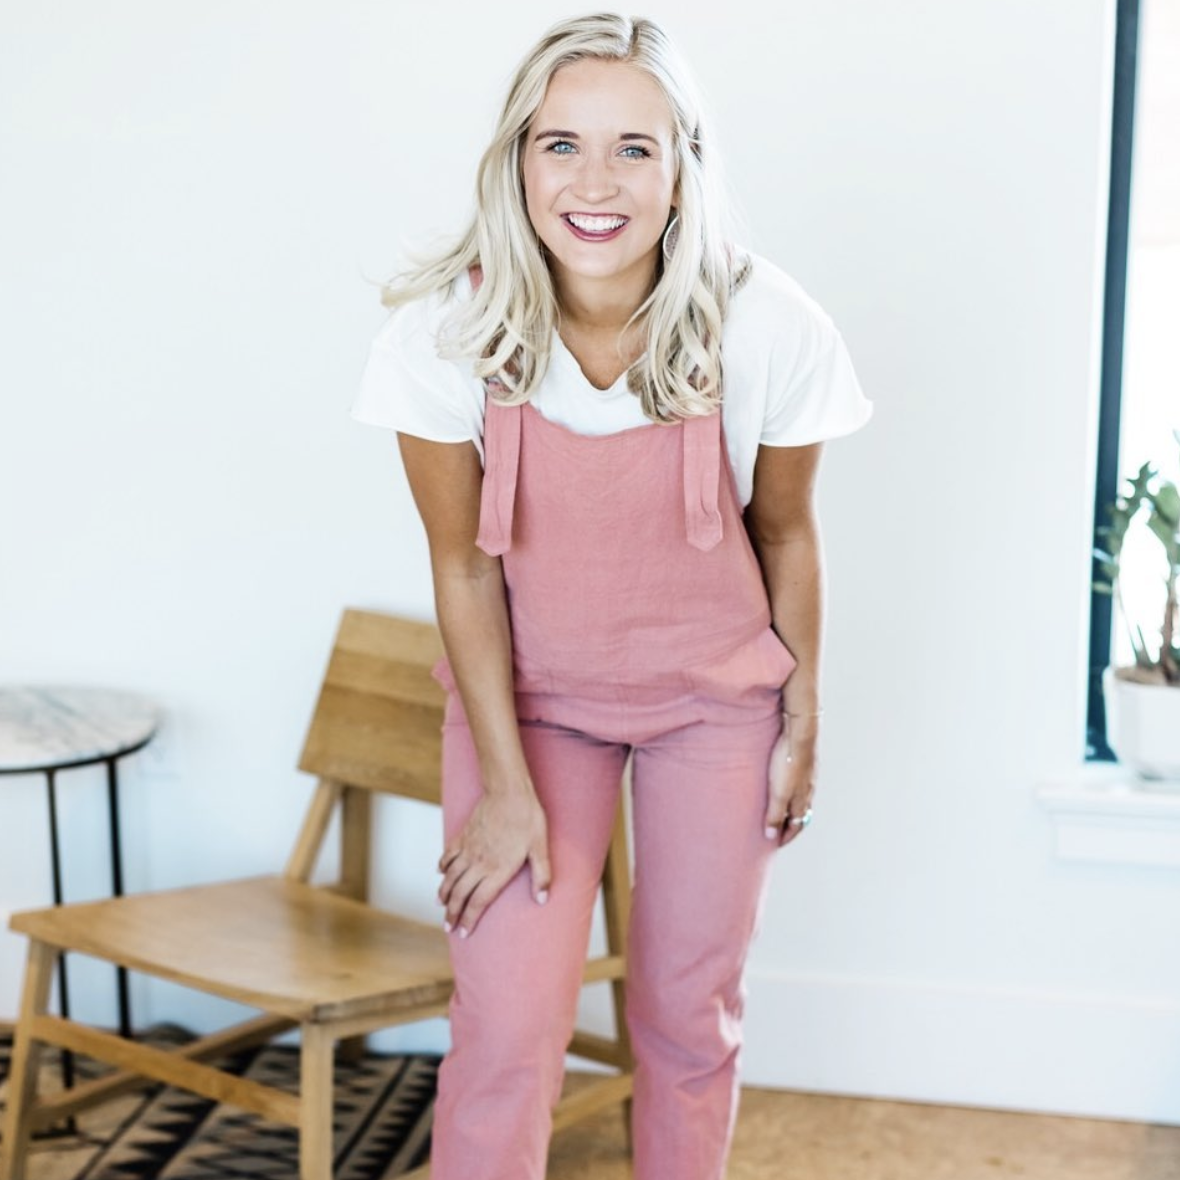 Chloe Elise - Chloe is a millennial money coach. She has lived the college life, been in debt and paid of 36k in 18 months and now she wants to share her inside secrets with you.